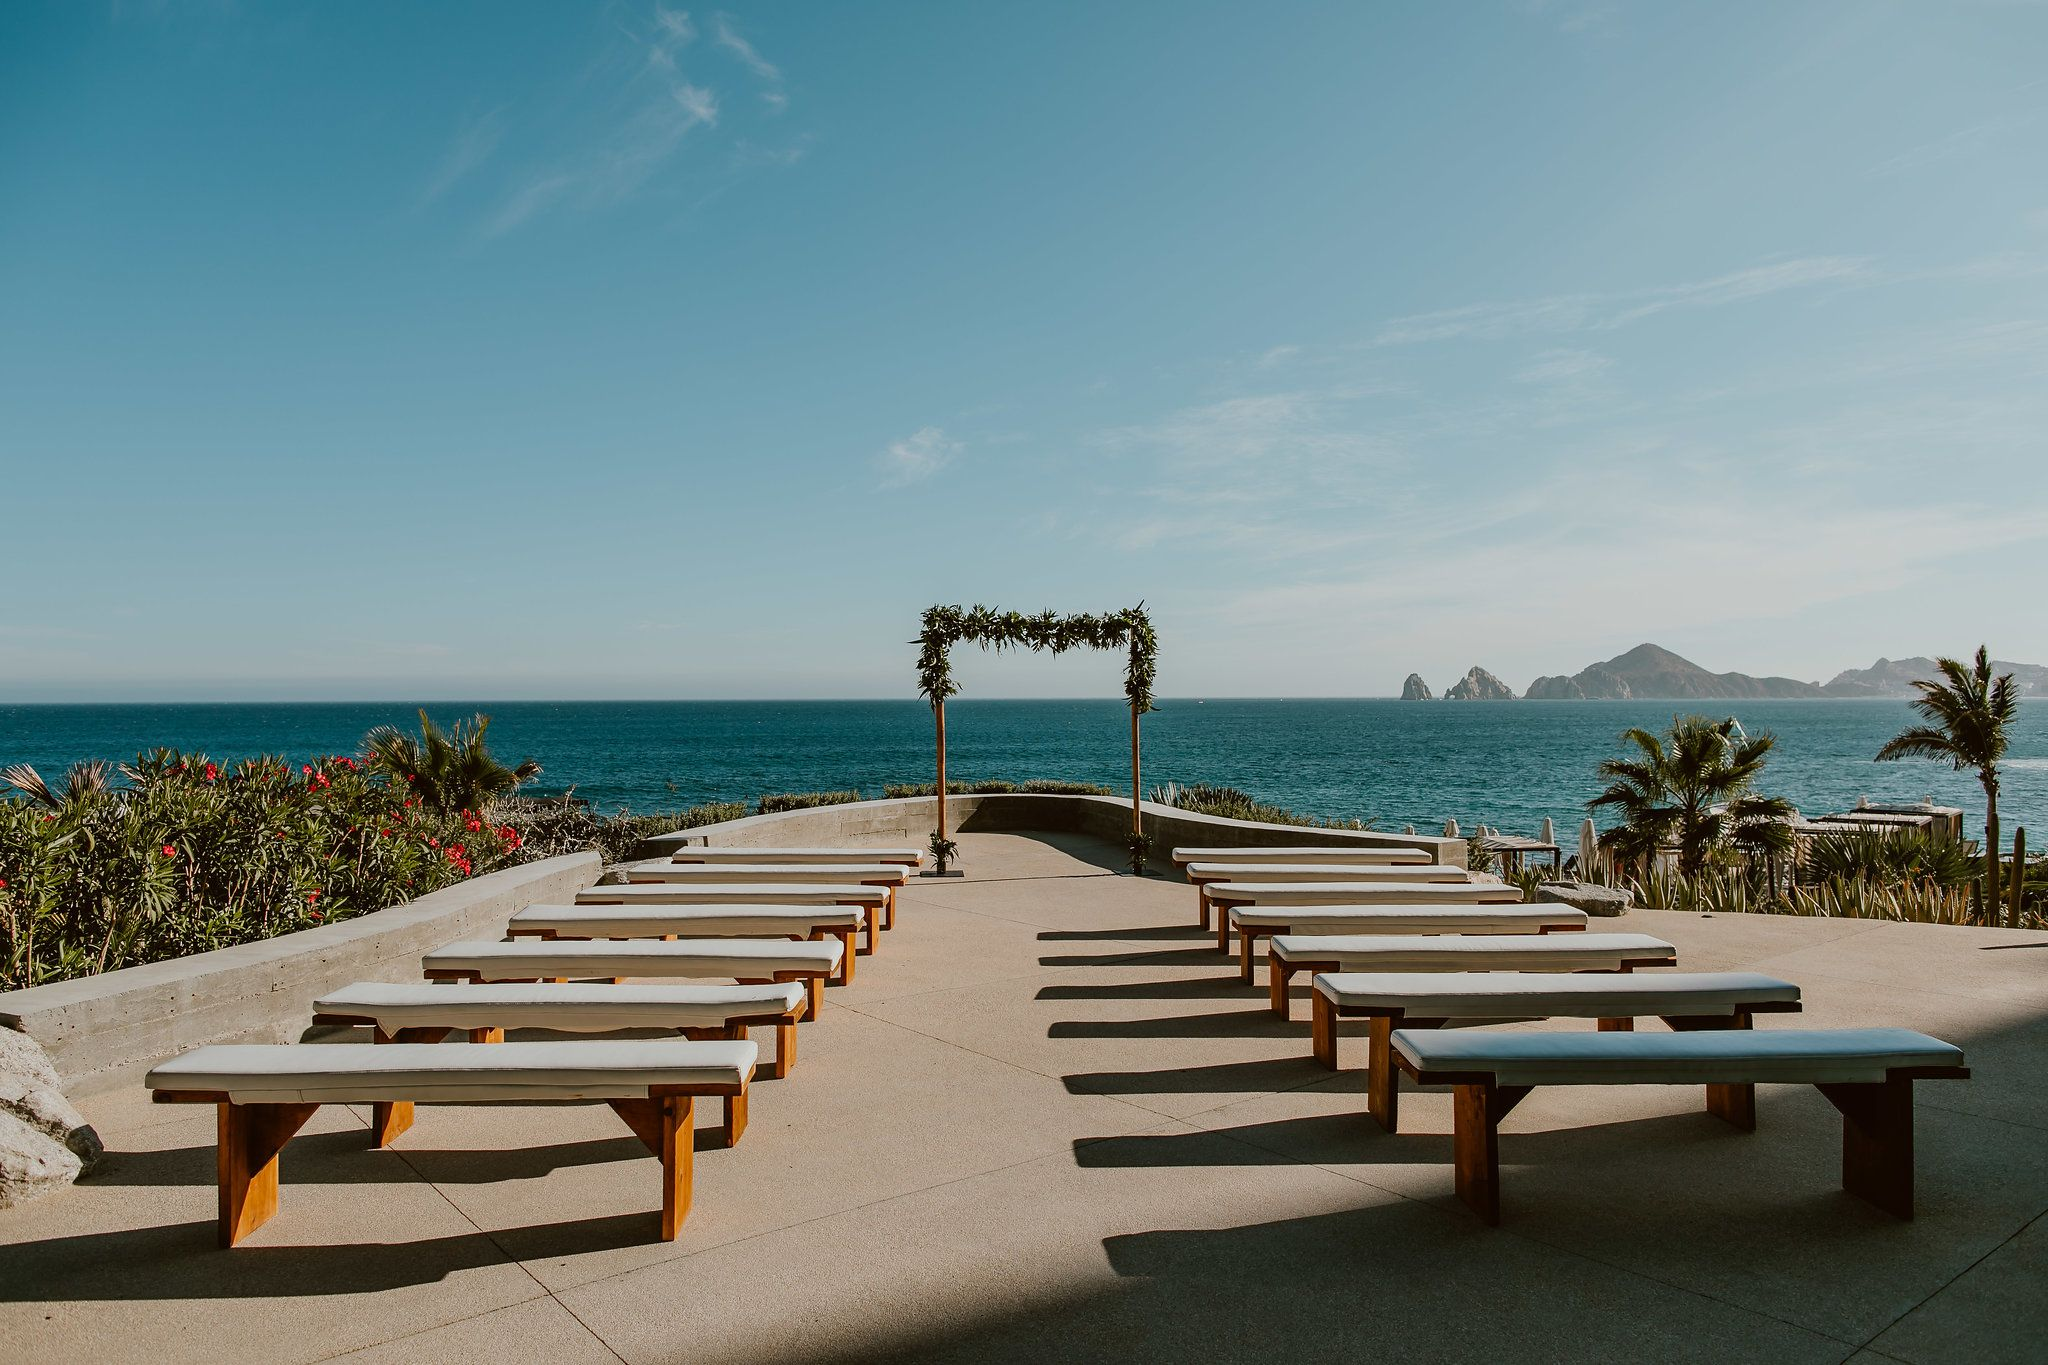 Wedding Ceremony design by Jesse Wolff at The Cape in Cabo San Lucas Mexico